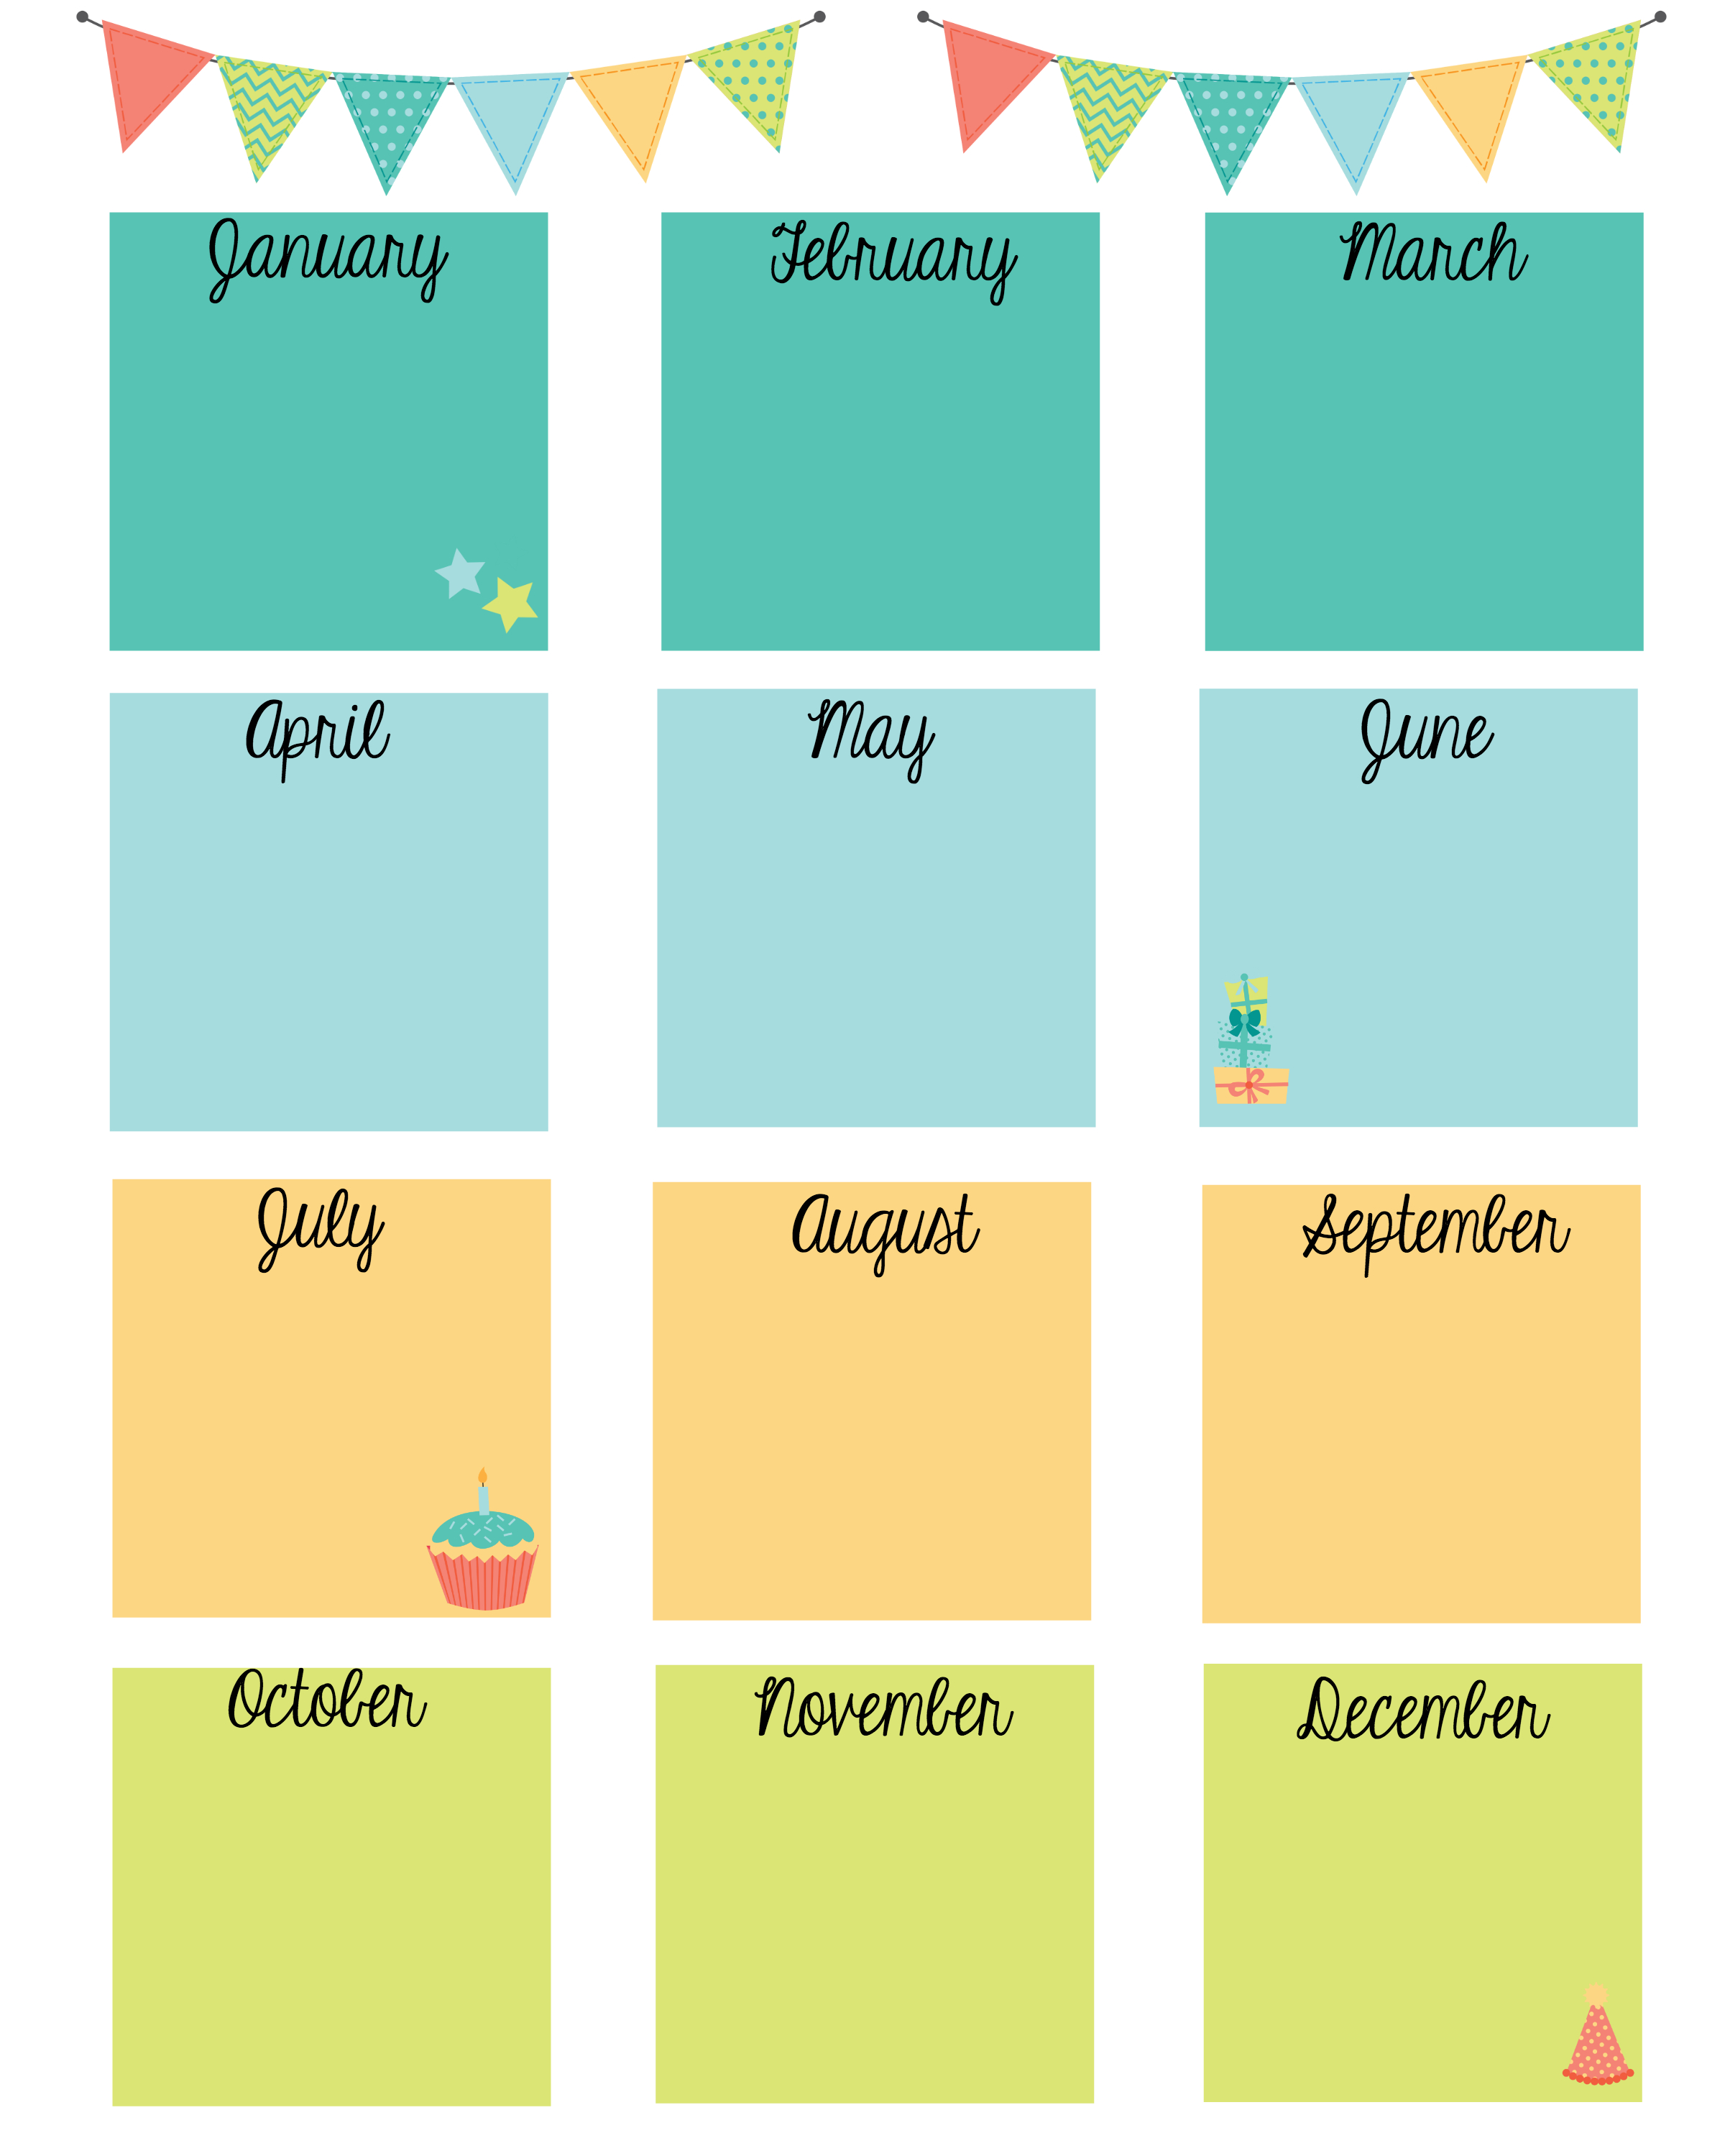 Keep In Touch With Friends With A Birthday Calendar | Calendars within Frame Birthday Calendar Templates Free